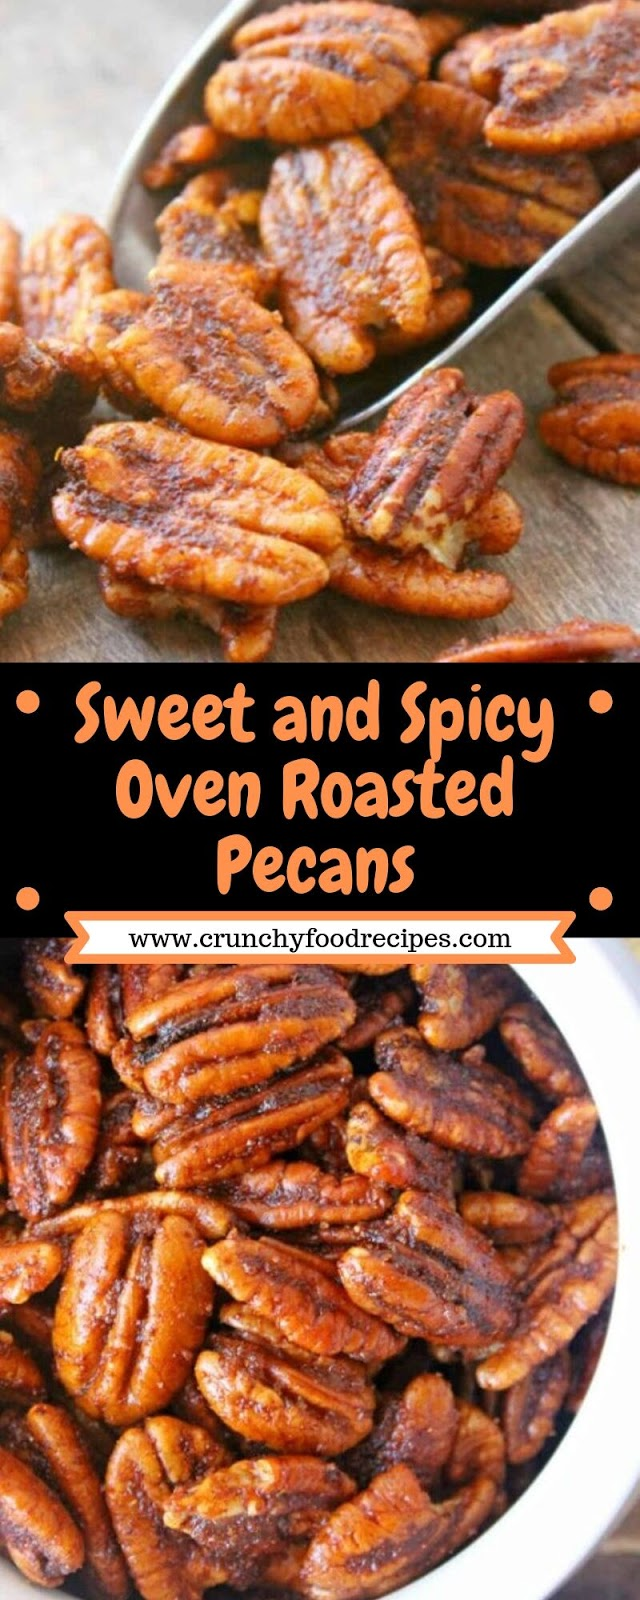 Sweet and Spicy Oven Roasted Pecans